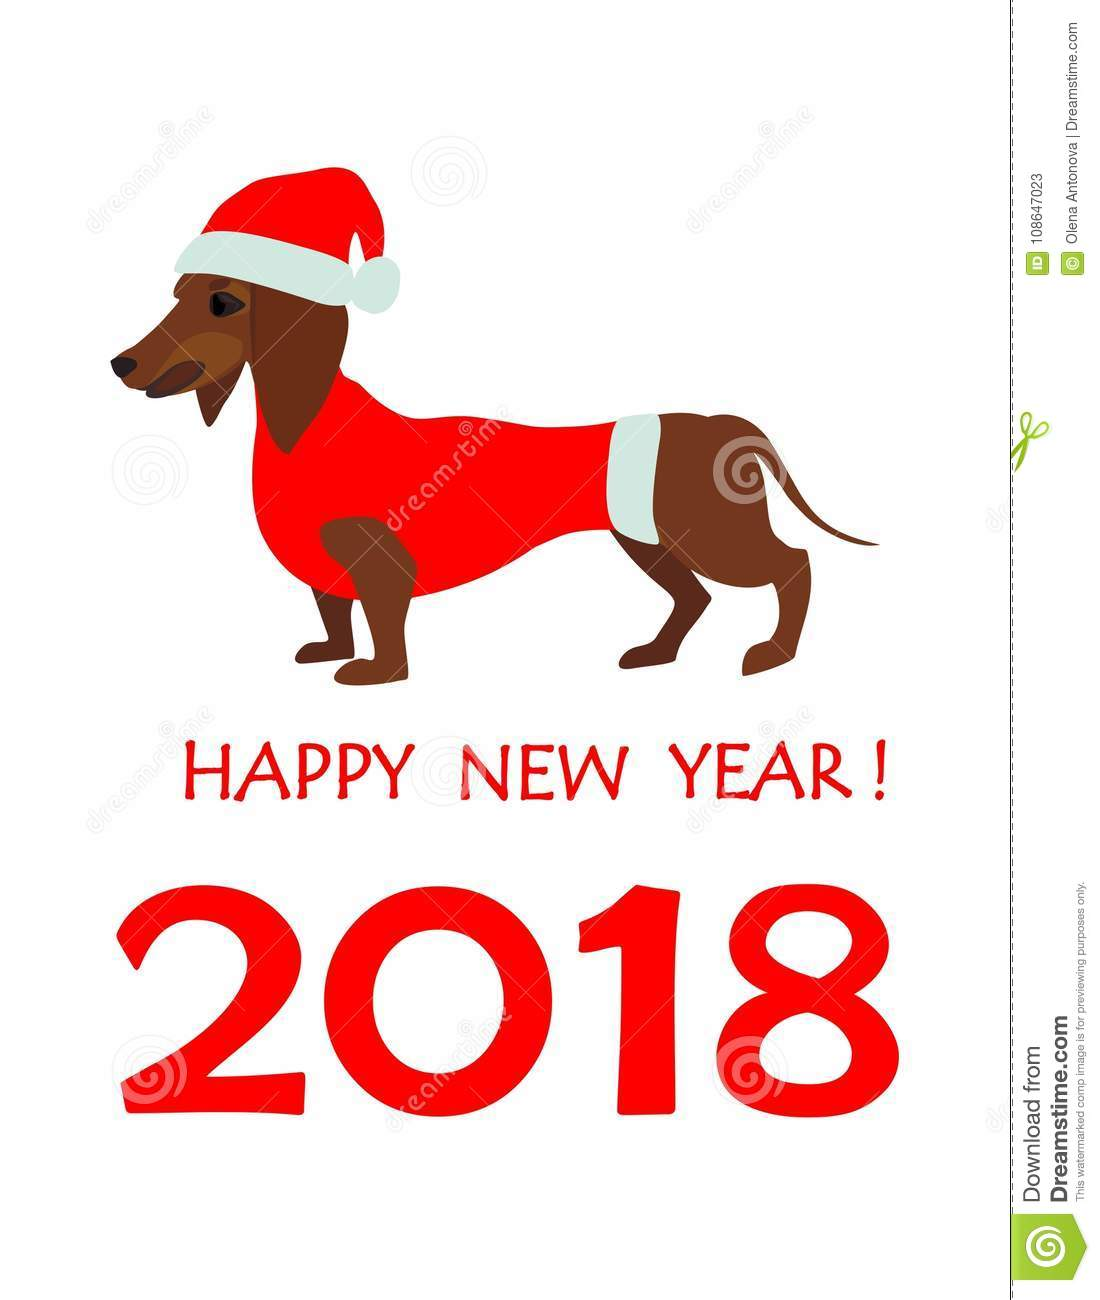 Greeting Card For 2018 New Year With Dachshund In Santa Hat Stock